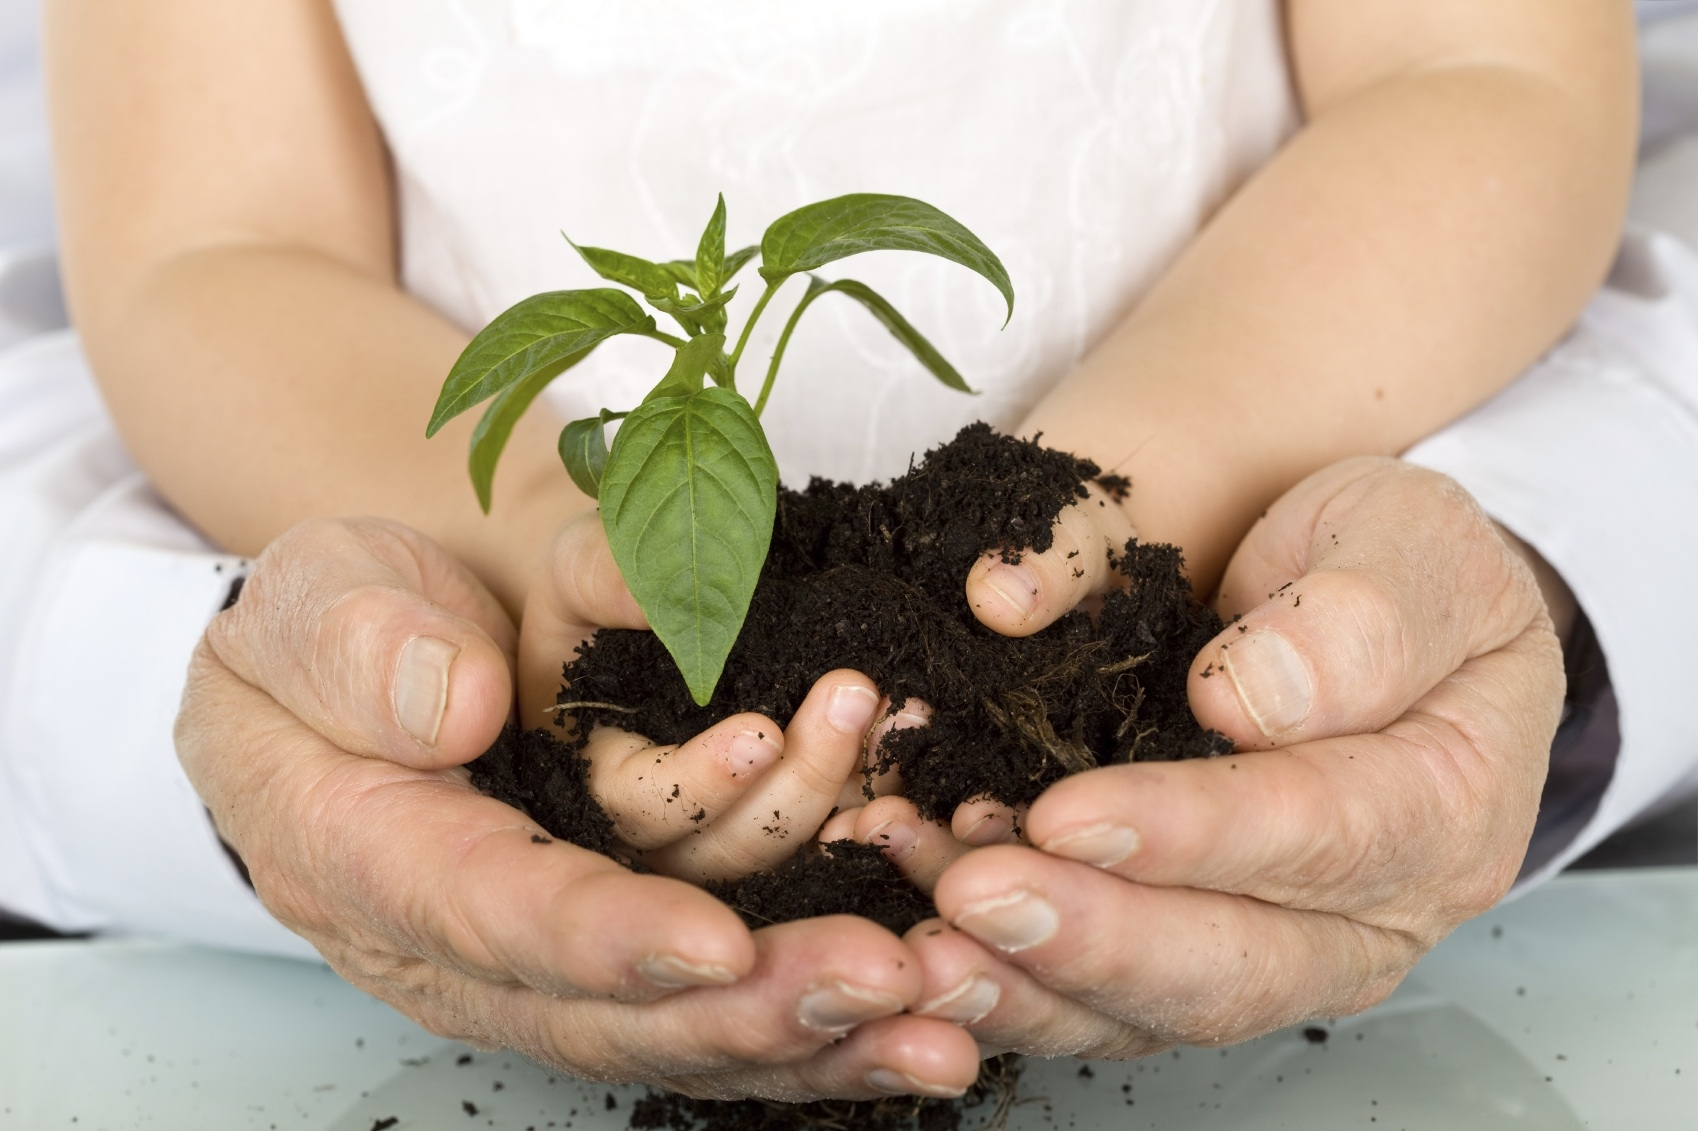 King Academy child and adult hands with seeding.jpg